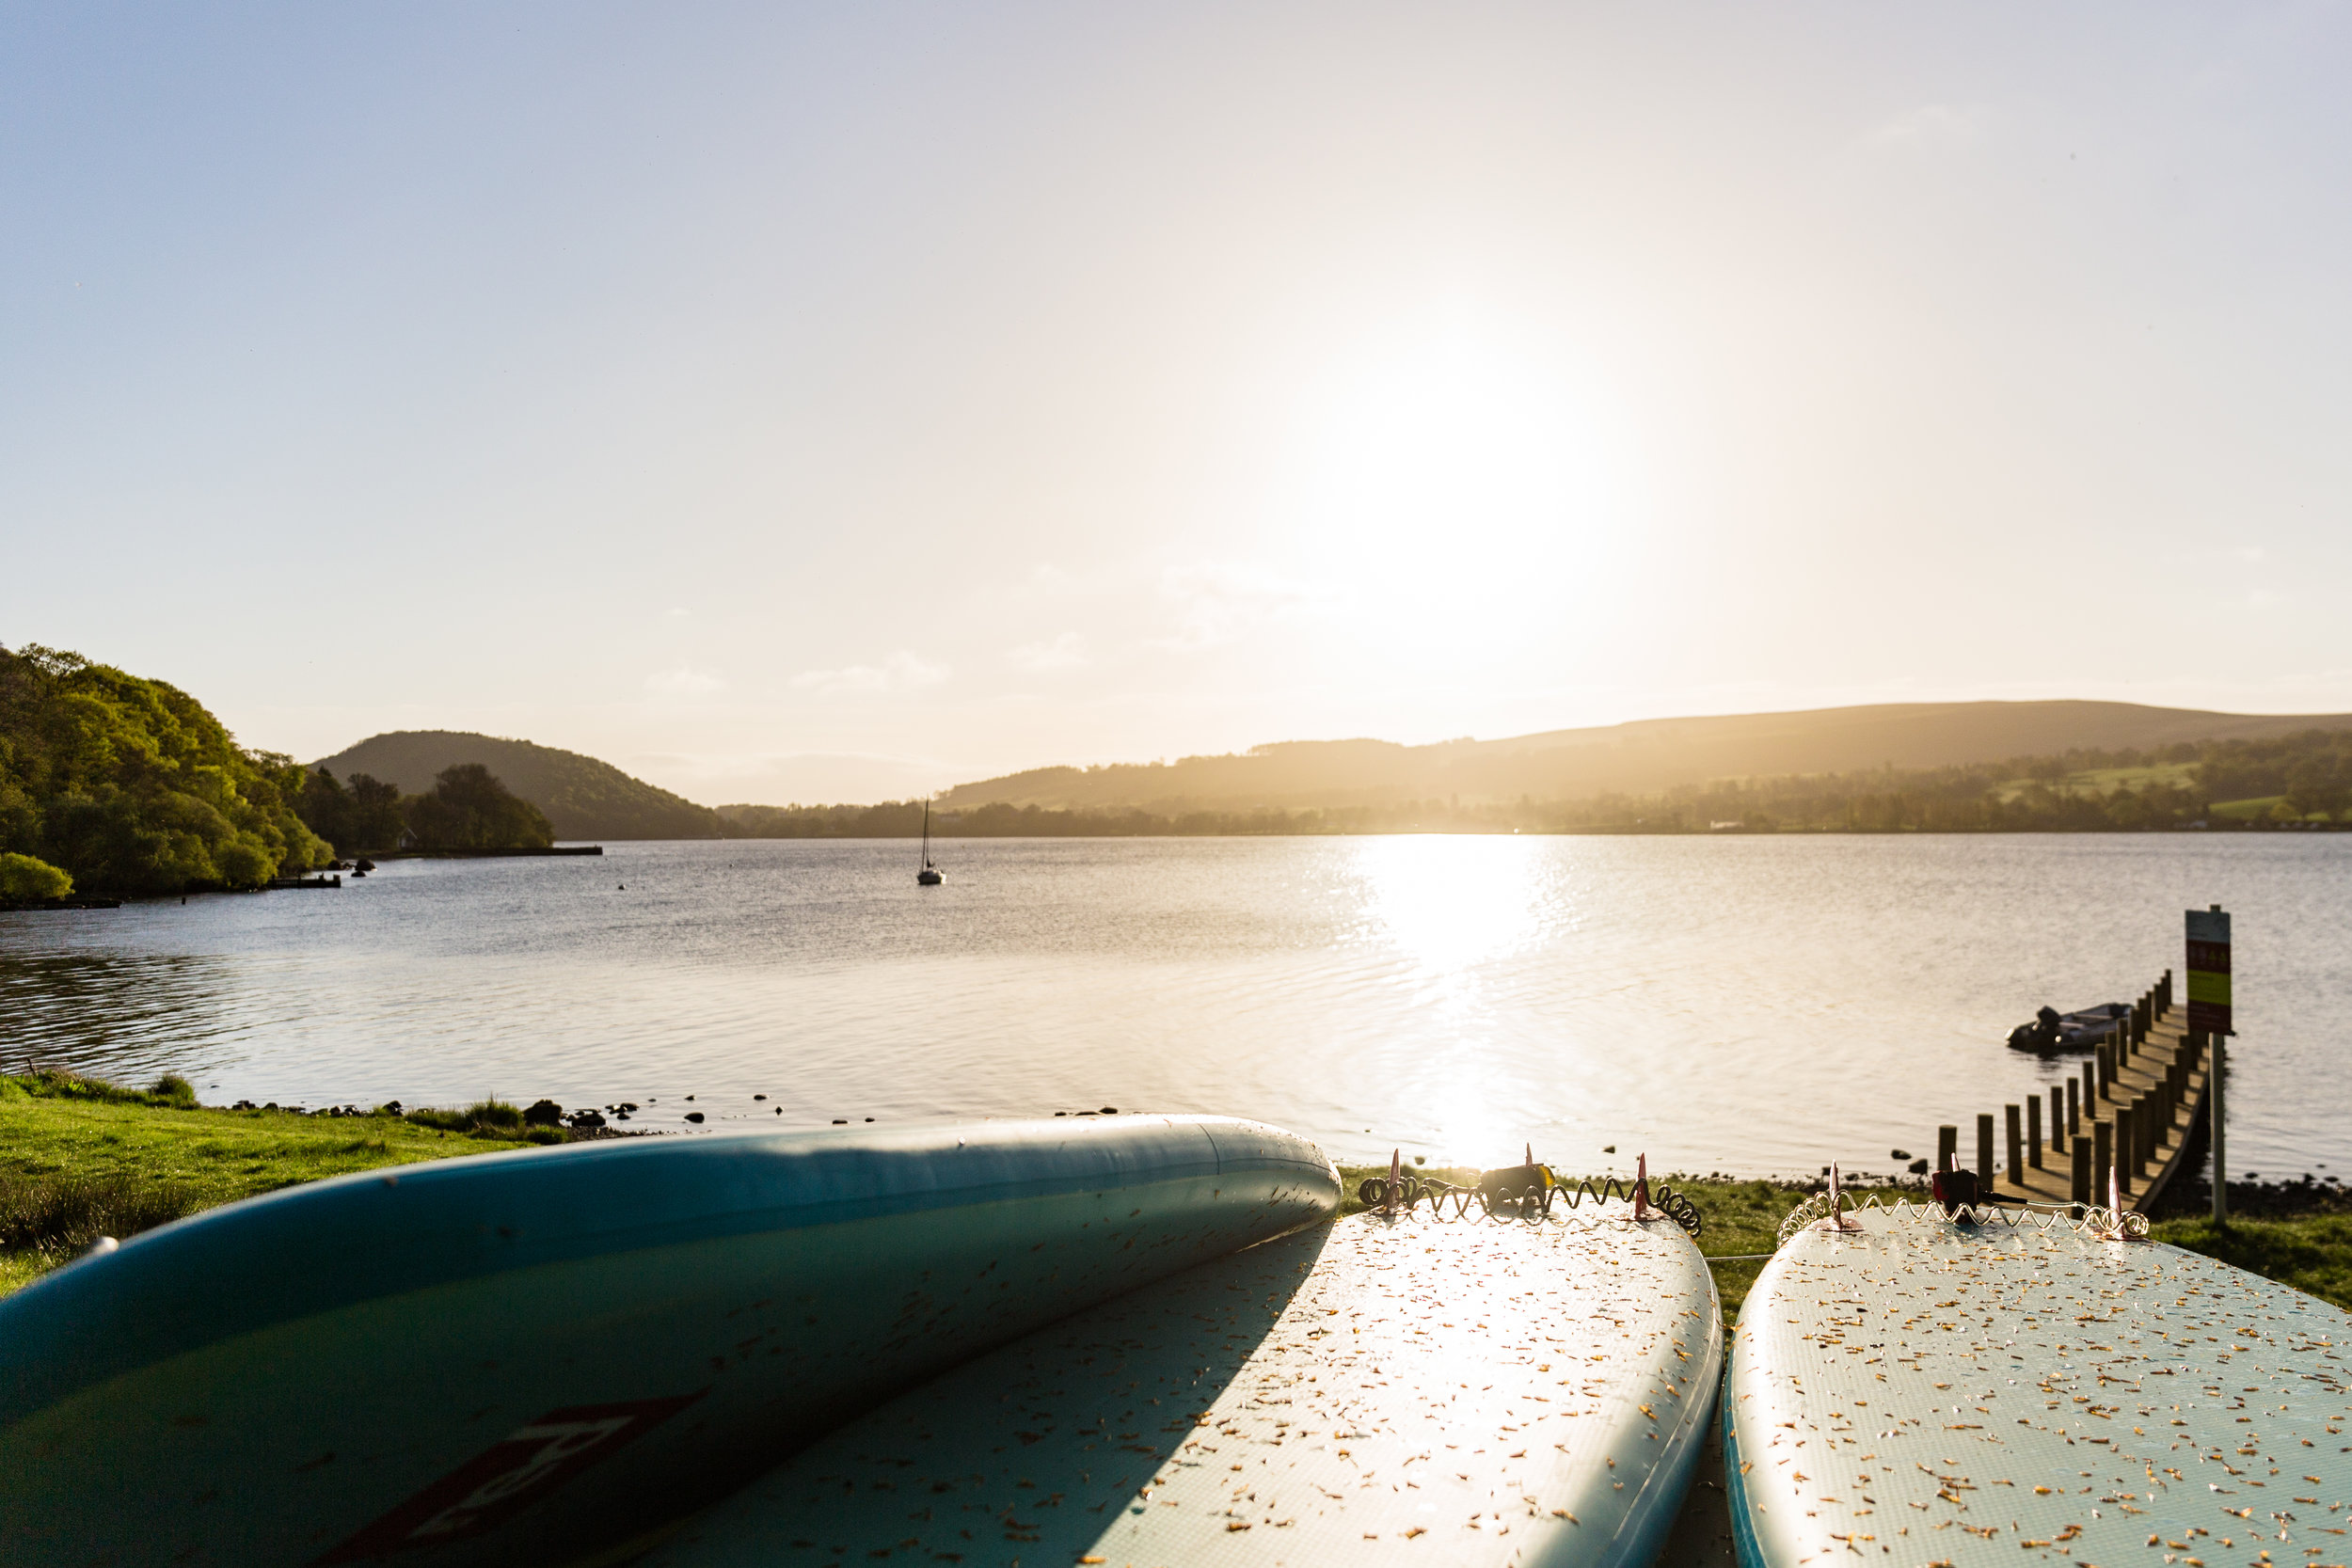 Stand-up Paddleboards to hire on beautoful Ullswater in the early morning light